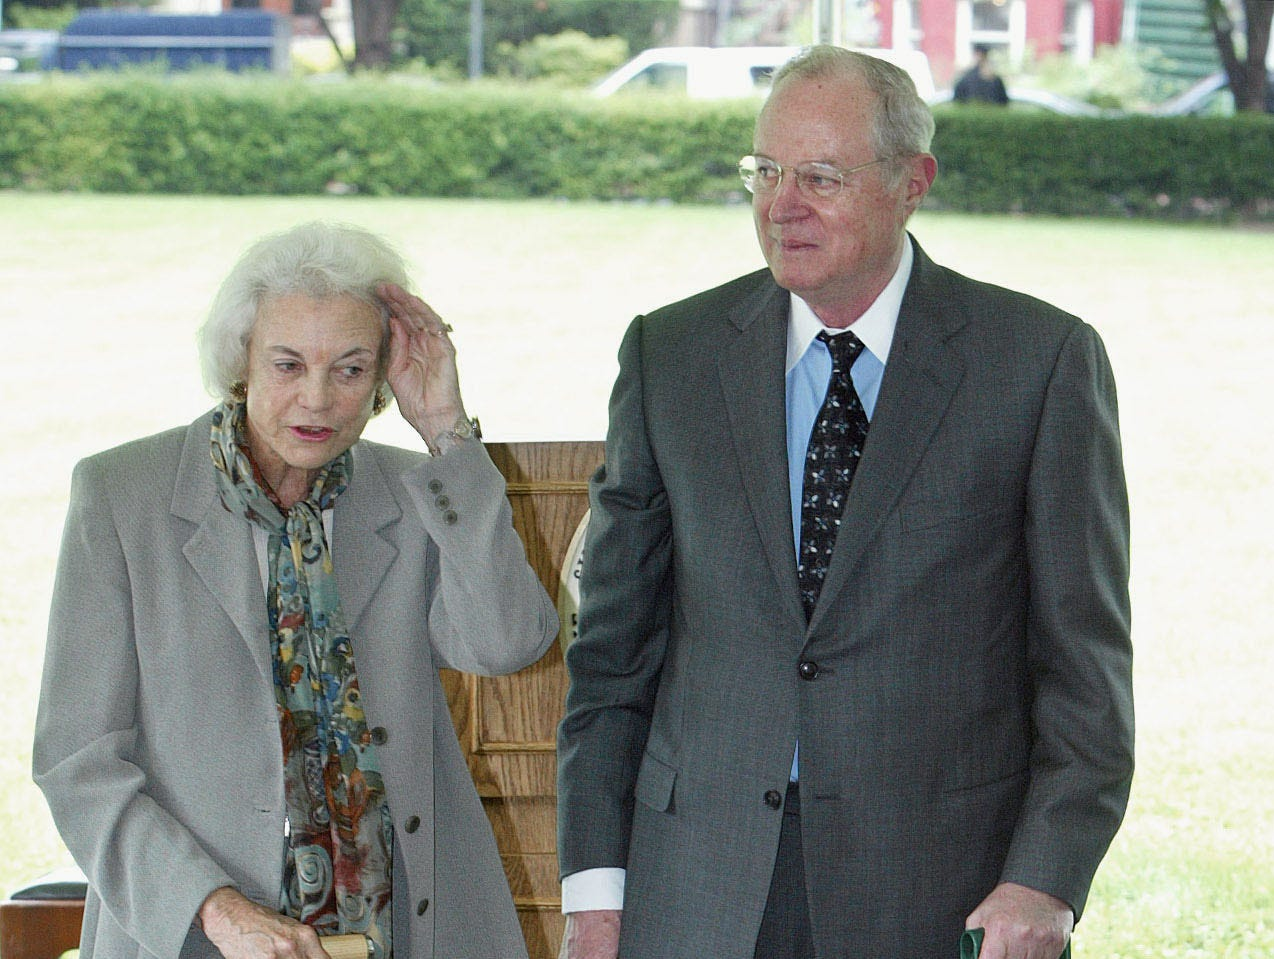 Supreme Court Associate Justice Sandra Day O'Connor, left, and Associate Justice Anthony M. Kennedy get ready to break ground, Tuesday, June 17, 2003, at a ceremony for a new section of the Supreme Court in Washington. It is phase one of a five-year restoration.